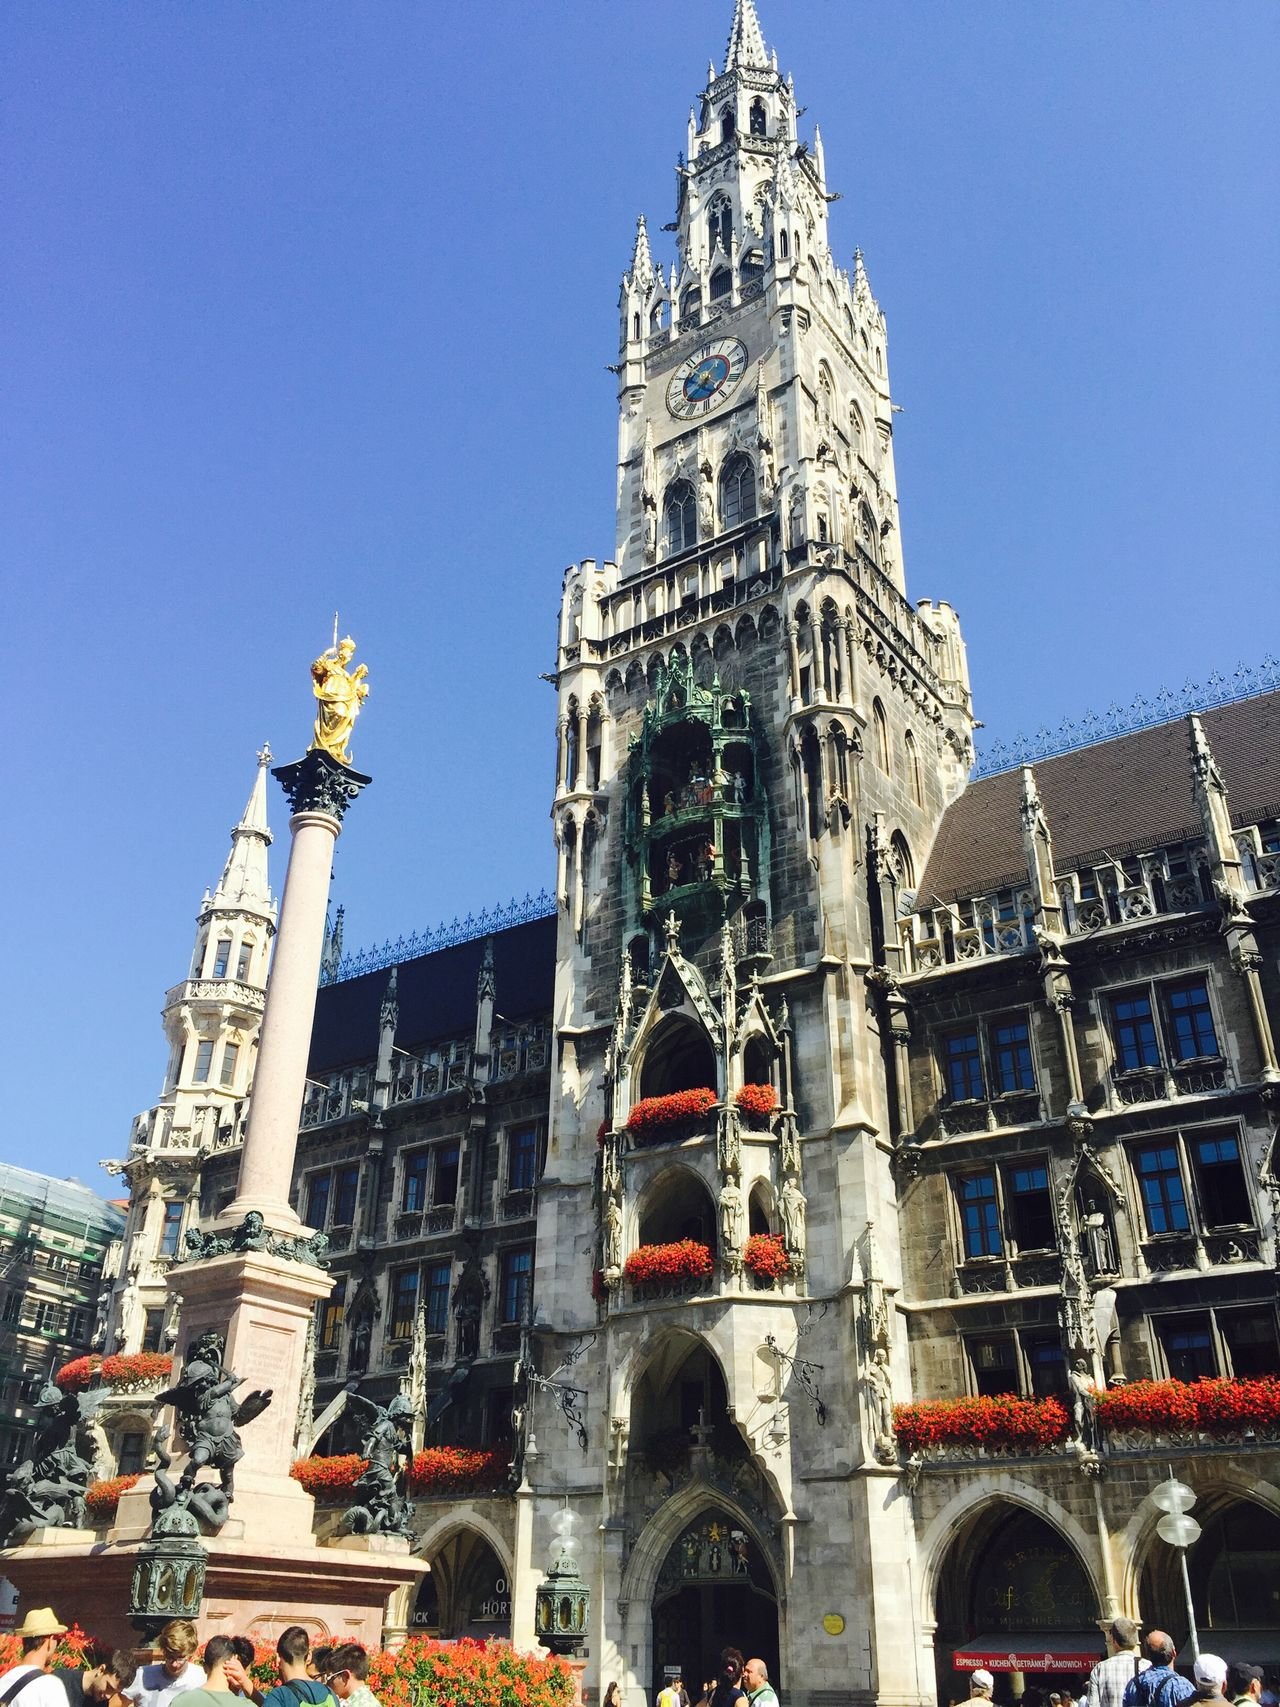 Munich city center Munich Munich Architecture Munich, Germany Found On The Roll Travel Around Europe 2015 Marienplatz Mariensäule Dance Cooper Historical Monuments History Architecture Historycal Place Monuments Of The World Monuments & Statues Munich History